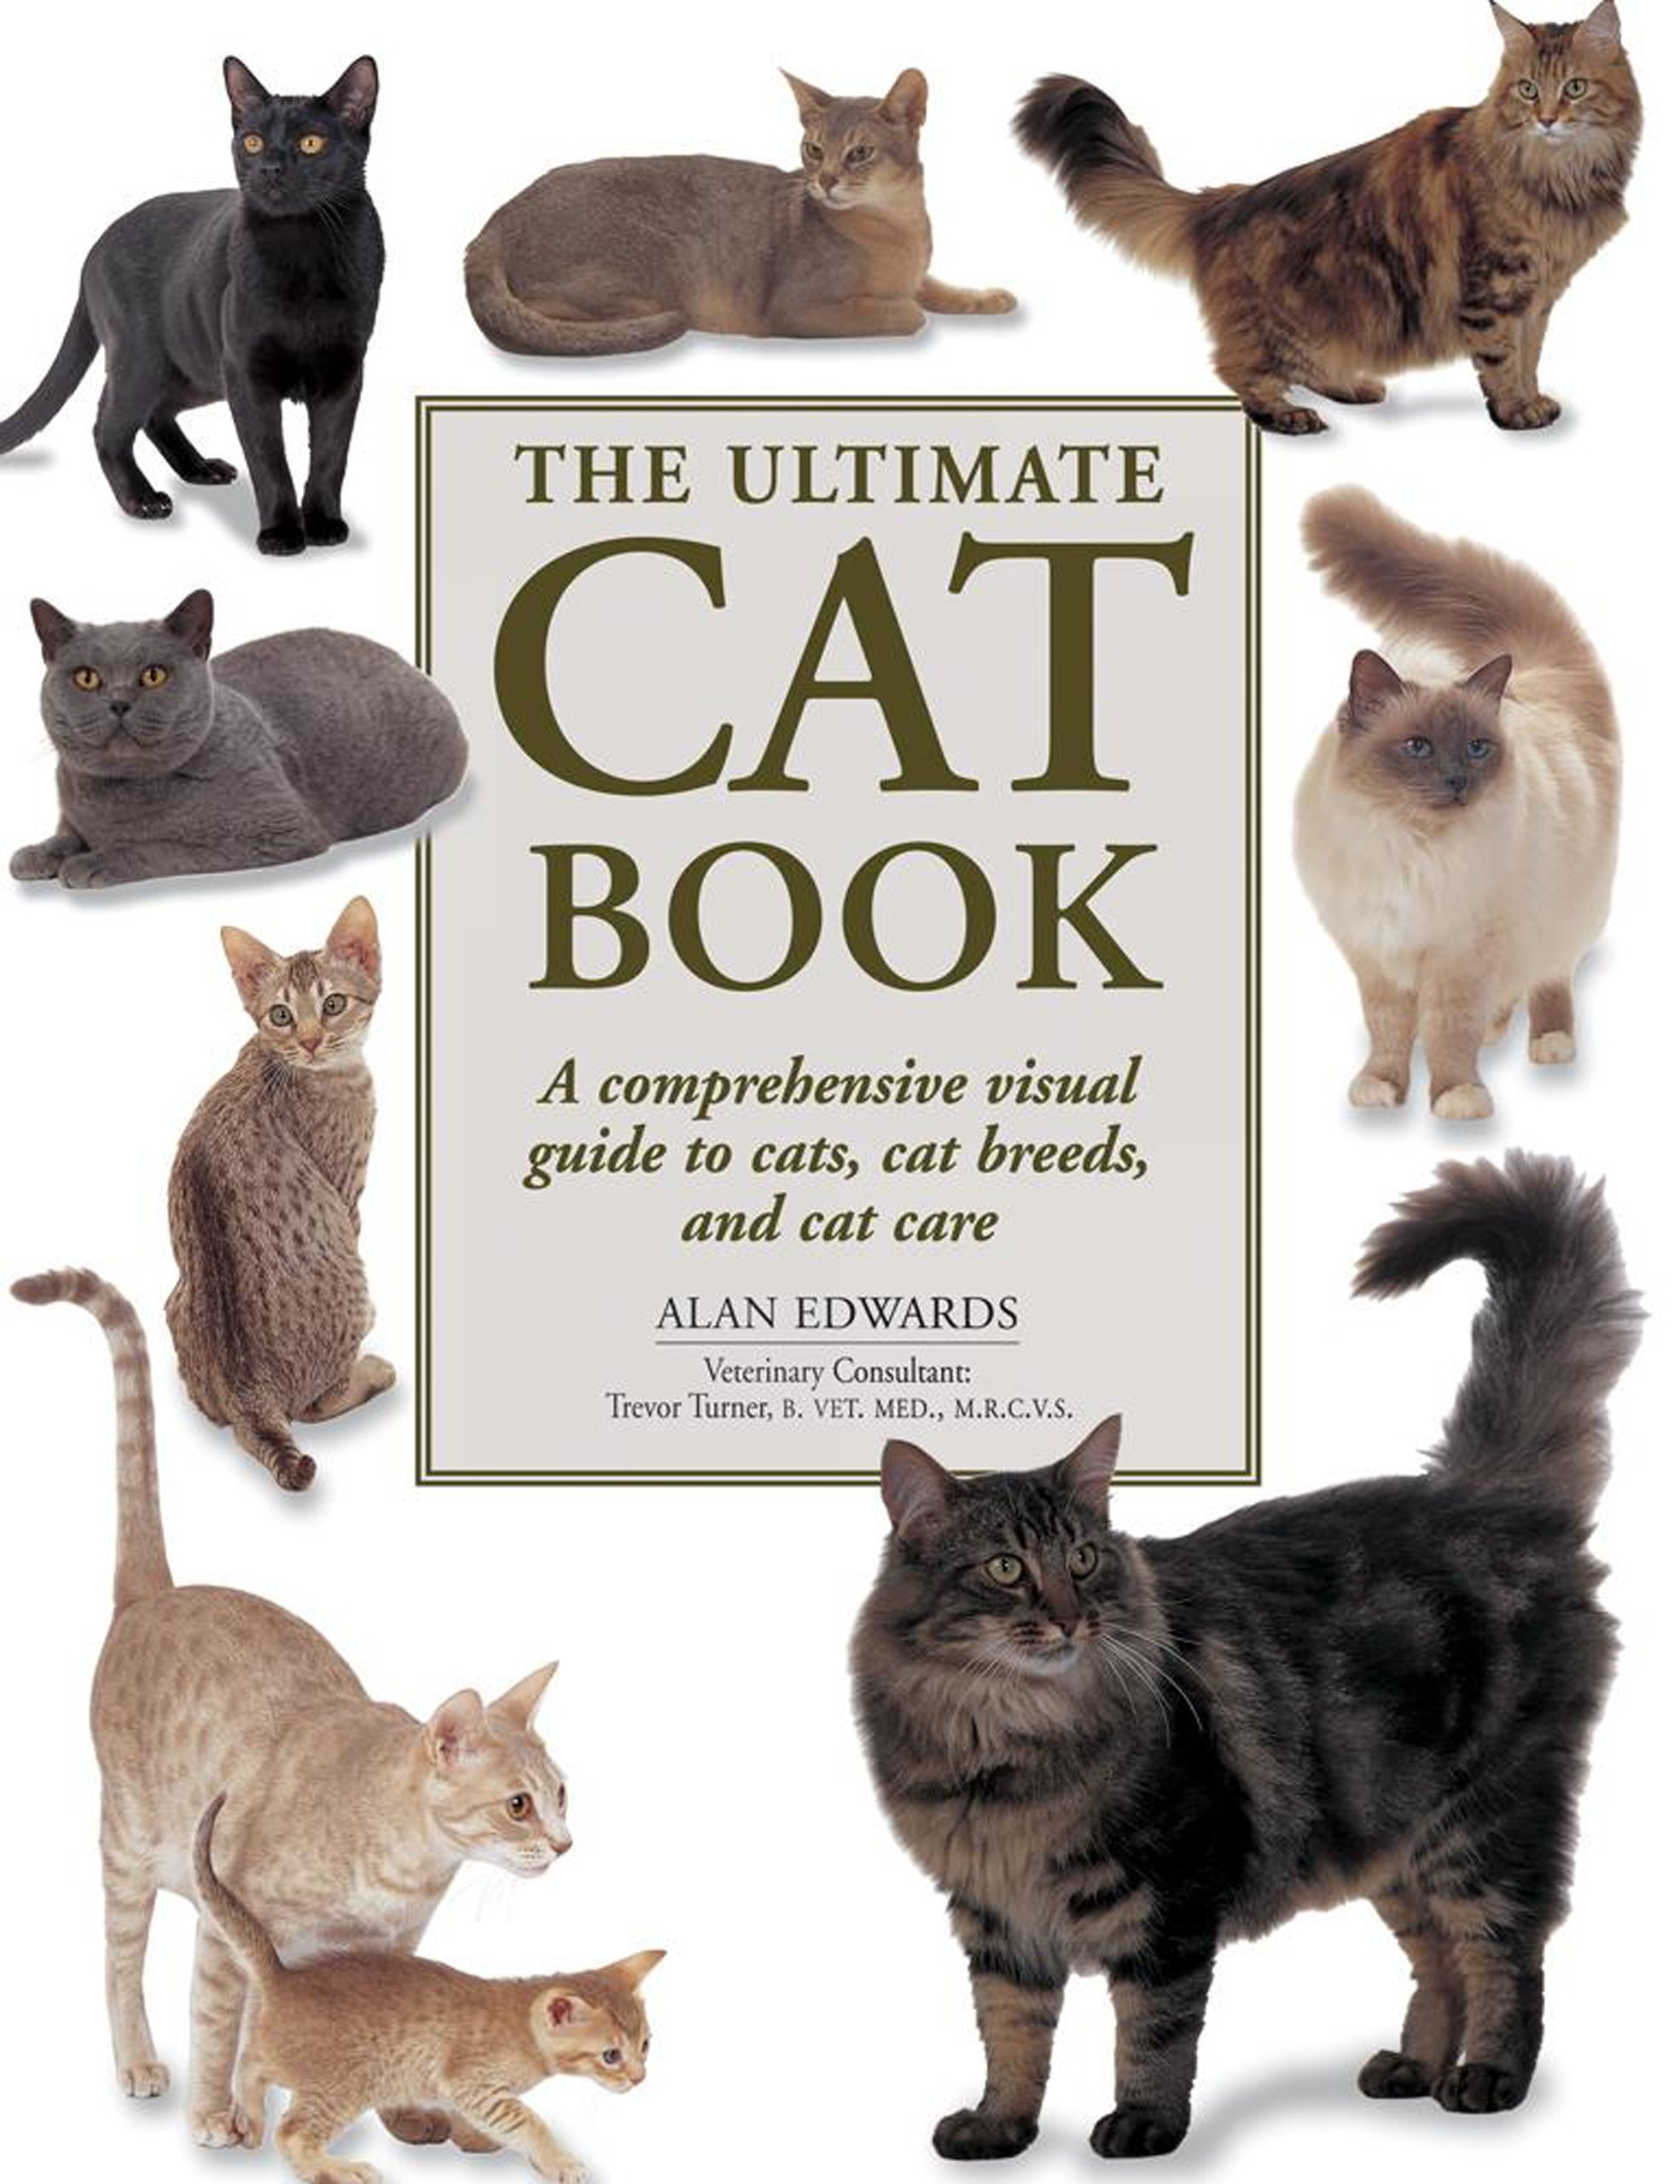 The Ultimate Cat Book: A comprehensive visual guide to cats, cat breeds and cat care